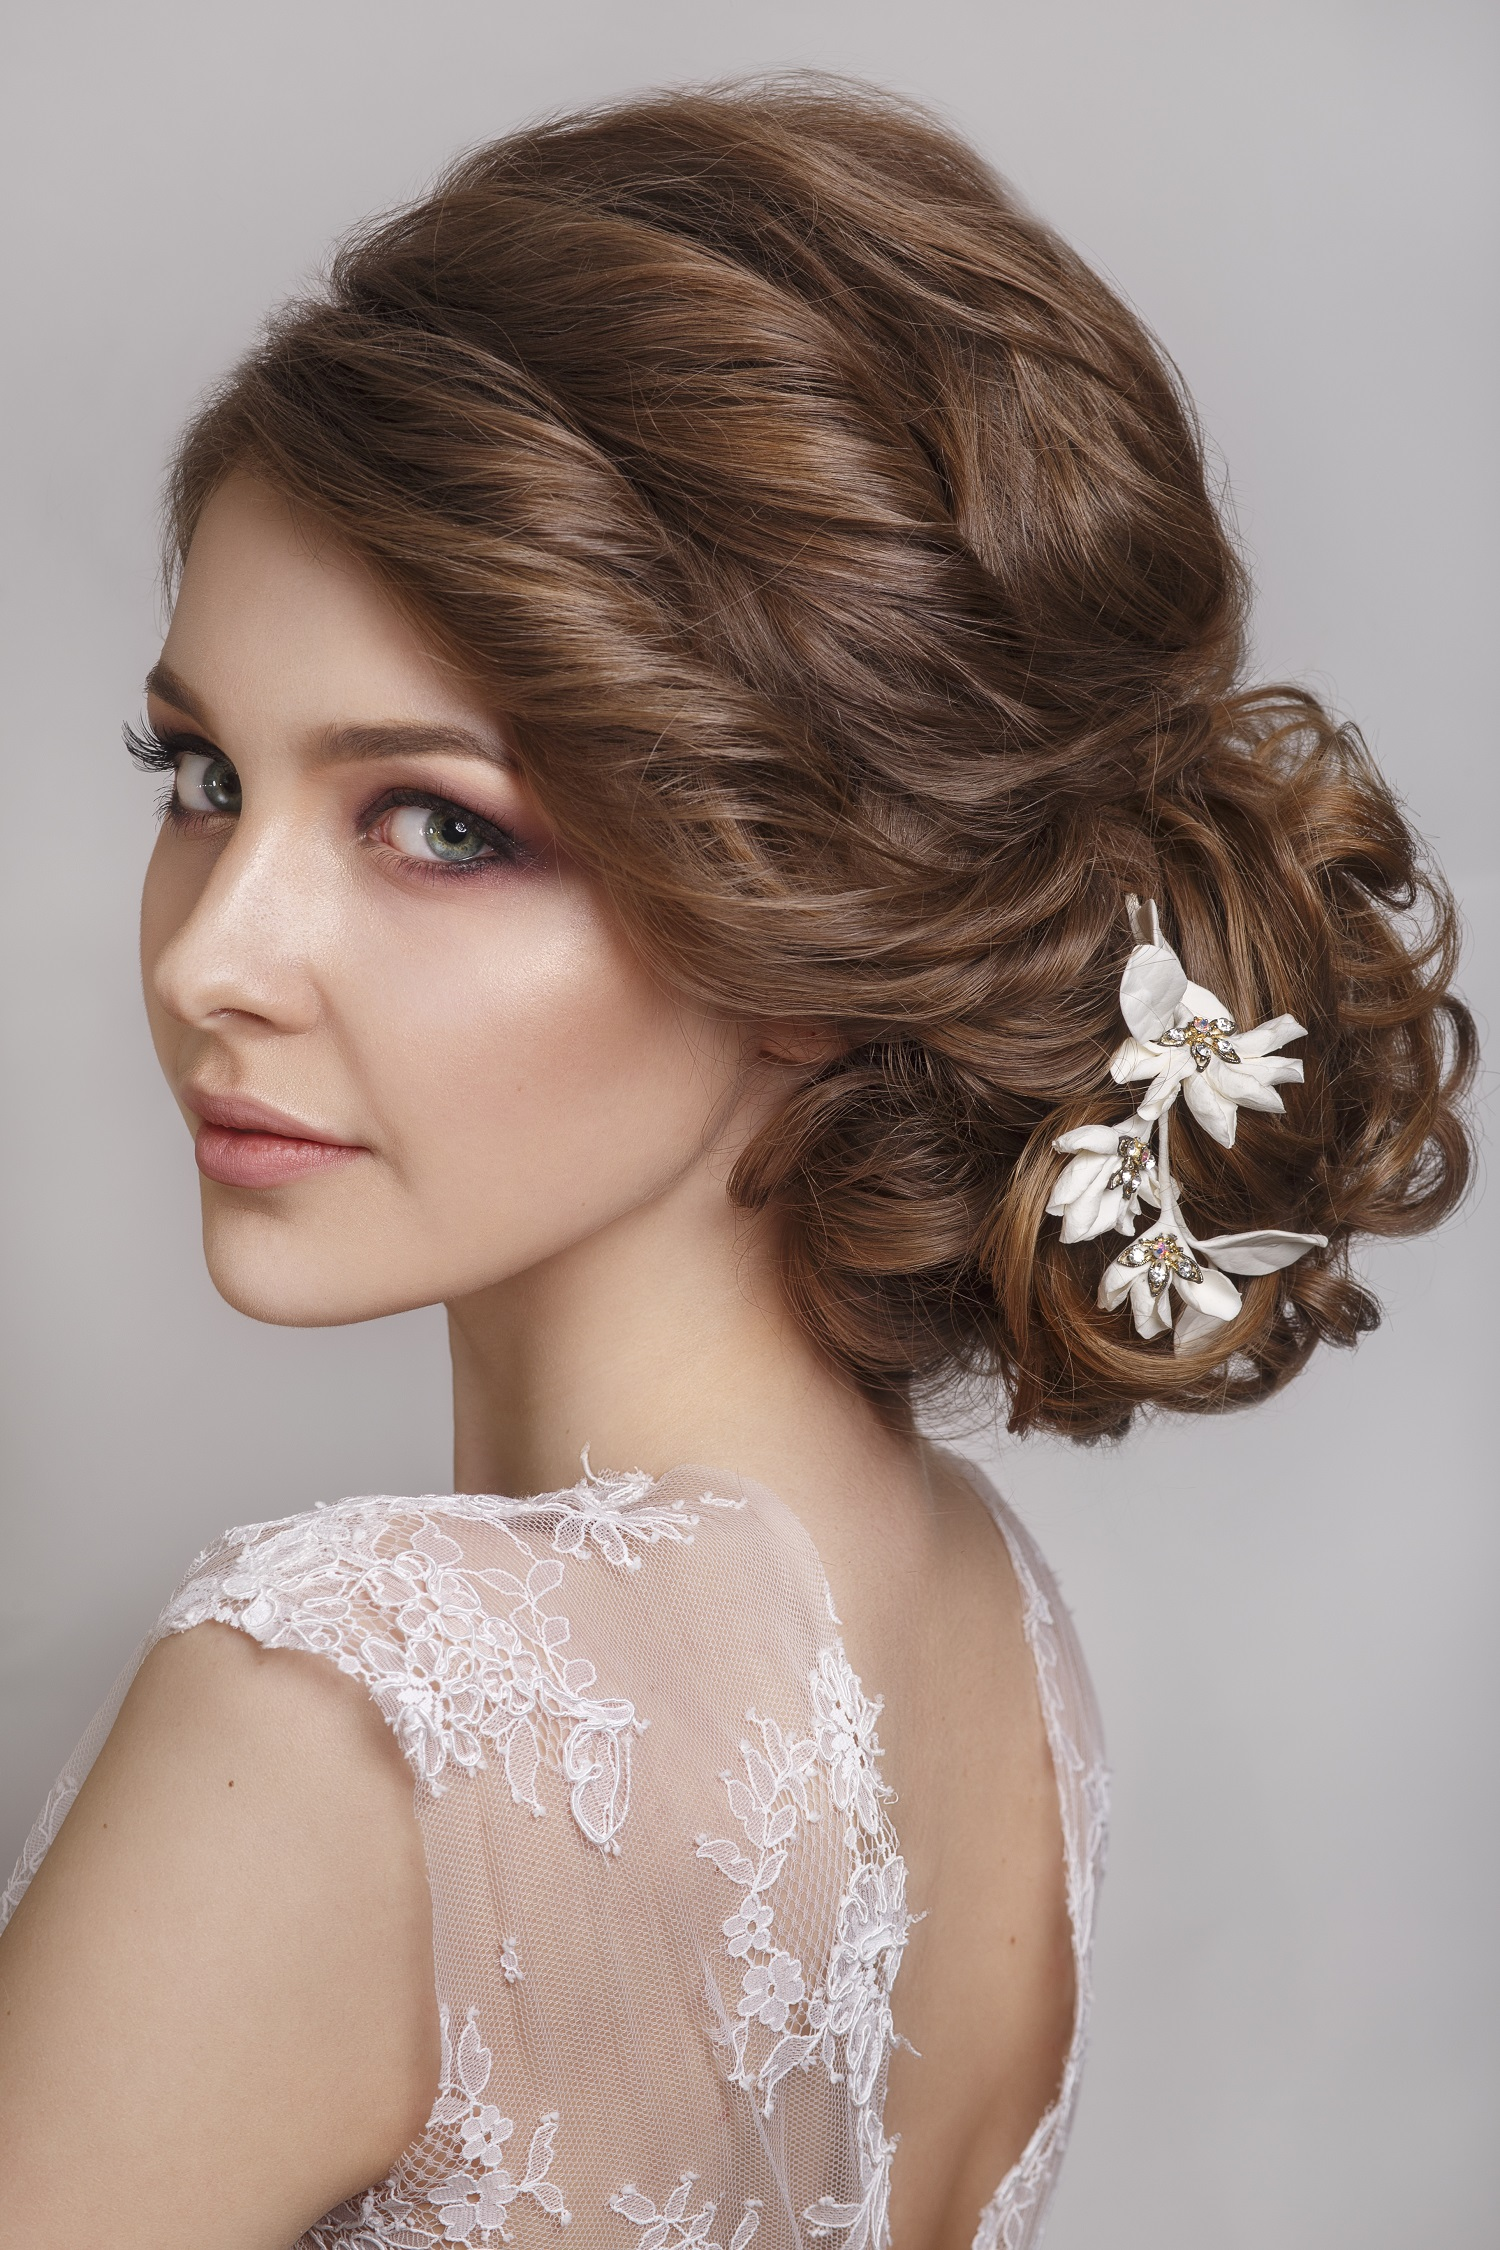 Choosing The Perfect Hairstyle To Match Your Wedding Dress Internet - Hairstyle with wedding gown